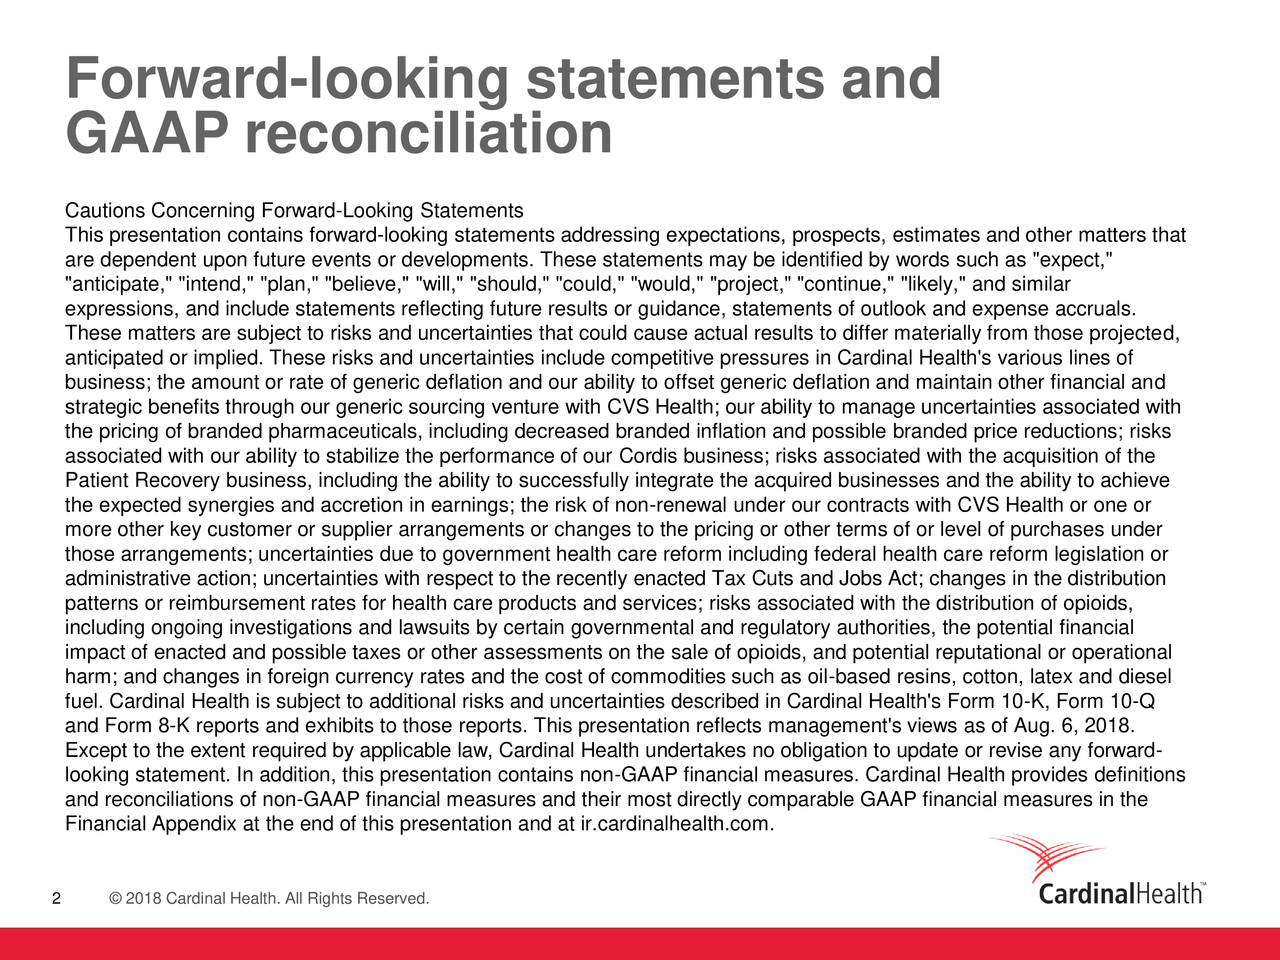 "GAAP reconciliation Cautions Concerning Forward-Looking Statements This presentation contains forward-looking statements addressing expectations, prospects, estimates and other matters that are dependent upon future events or developments. These statements may be identified by words such as ""expect,"" ""anticipate,"" ""intend,"" ""plan,"" ""believe,"" ""will,"" ""should,"" ""could,"" ""would,"" ""project,"" ""continue,"" ""likely,"" and similar expressions, and include statements reflecting future results or guidance, statements of outlook and expense accruals. These matters are subject to risks and uncertainties that could cause actual results to differ materially from those projected, anticipated or implied. These risks and uncertainties include competitive pressures in Cardinal Health's various lines of business; the amount or rate of generic deflation and our ability to offset generic deflation and maintain other financial and strategic benefits through our generic sourcing venture with CVS Health; our ability to manage uncertainties associated with the pricing of branded pharmaceuticals, including decreased branded inflation and possible branded price reductions; risks associated with our ability to stabilize the performance of our Cordis business; risks associated with the acquisition of the Patient Recovery business, including the ability to successfully integrate the acquired businesses and the ability to achieve the expected synergies and accretion in earnings; the risk of non-renewal under our contracts with CVS Health or one or more other key customer or supplier arrangements or changes to the pricing or other terms of or level of purchases under those arrangements; uncertainties due to government health care reform including federal health care reform legislation or administrative action; uncertainties with respect to the recently enacted Tax Cuts and Jobs Act; changes in the distribution patterns or reimbursement rates for health care products and services; risks associated with the distribution of opioids, including ongoing investigations and lawsuits by certain governmental and regulatory authorities, the potential financial impact of enacted and possible taxes or other assessments on the sale of opioids, and potential reputational or operational harm; and changes in foreign currency rates and the cost of commodities such as oil-based resins, cotton, latex and diesel fuel. Cardinal Health is subject to additional risks and uncertainties described in Cardinal Health's Form 10-K, Form 10-Q and Form 8-K reports and exhibits to those reports. This presentation reflects management's views as of Aug. 6, 2018. Except to the extent required by applicable law, Cardinal Health undertakes no obligation to update or revise any forward- looking statement. In addition, this presentation contains non-GAAP financial measures. Cardinal Health provides definitions and reconciliations of non-GAAP financial measures and their most directly comparable GAAP financial measures in the Financial Appendix at the end of this presentation and at ir.cardinalhealth.com. 2 © 2018 Cardinal Health. All Rights Reserved."